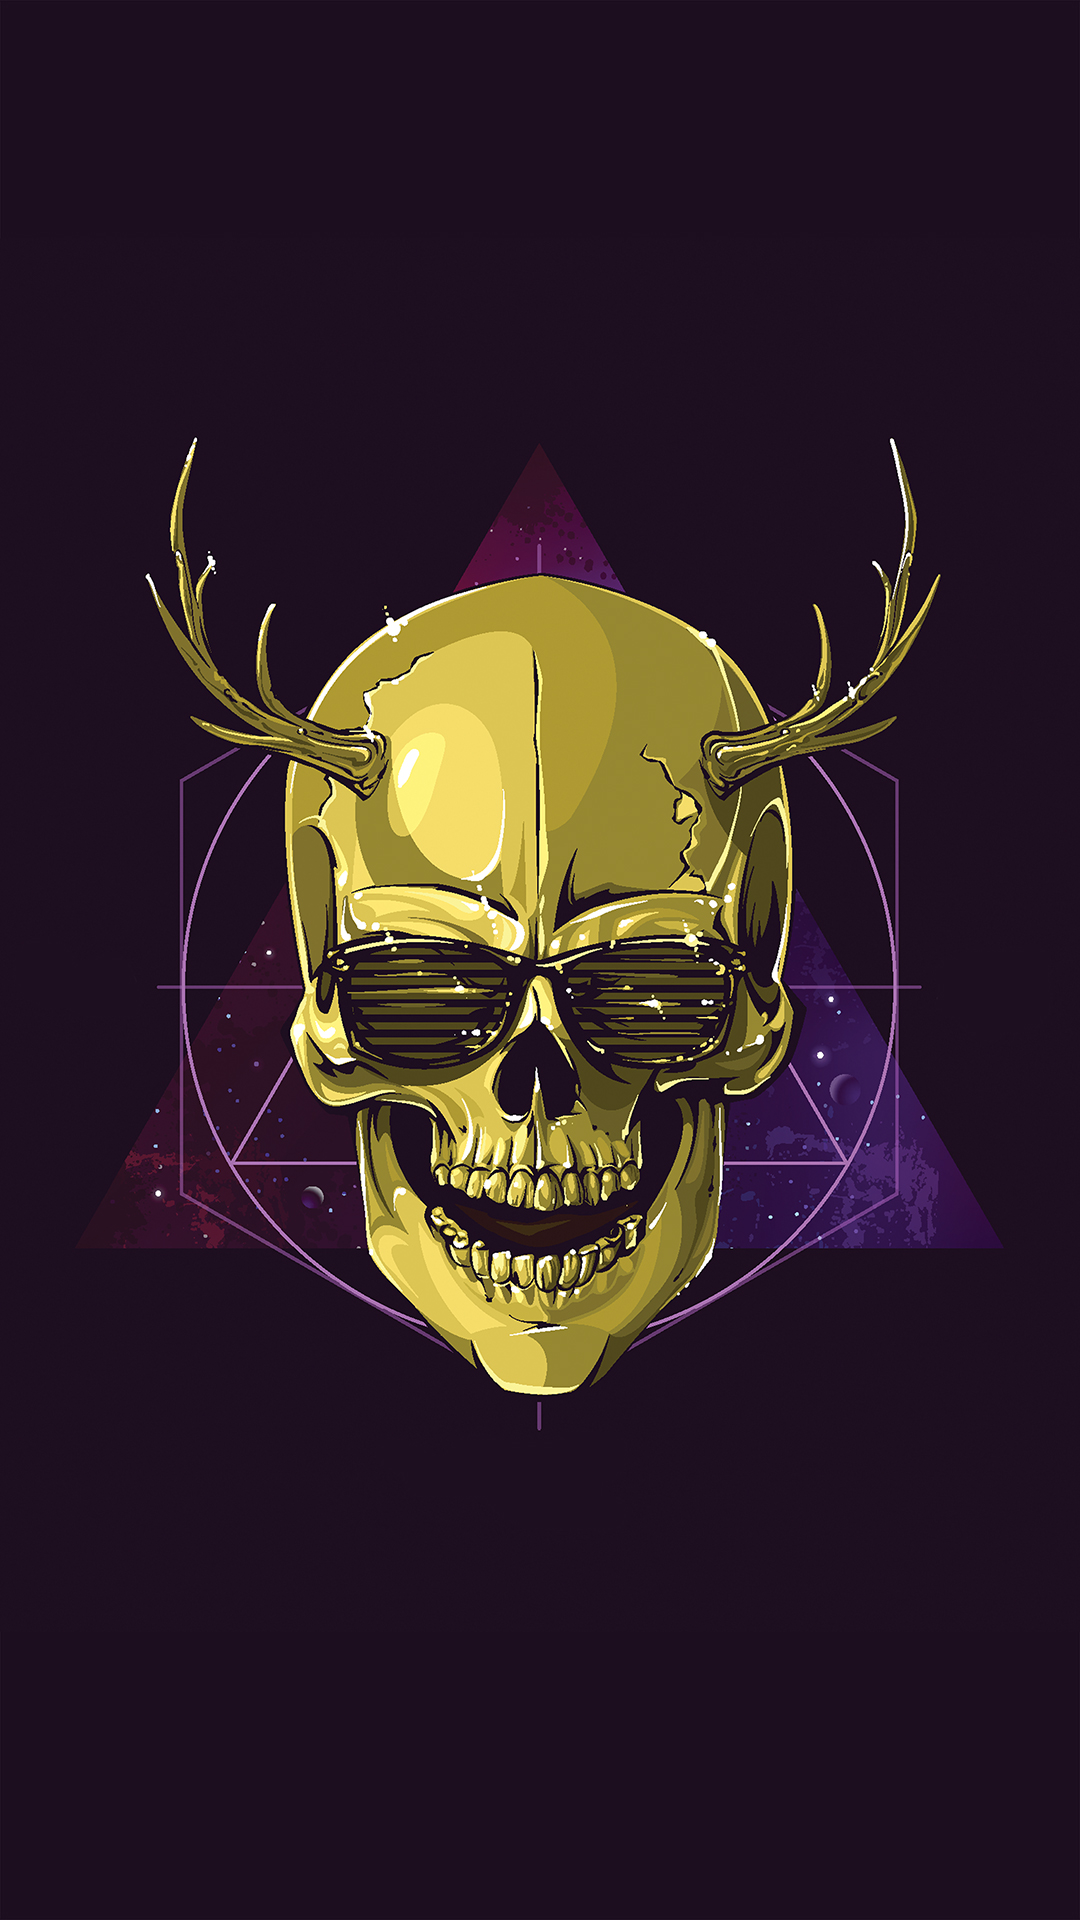 Hd wallpaper mobile phone - Latest Mobile Wallpapers Hipster Skull